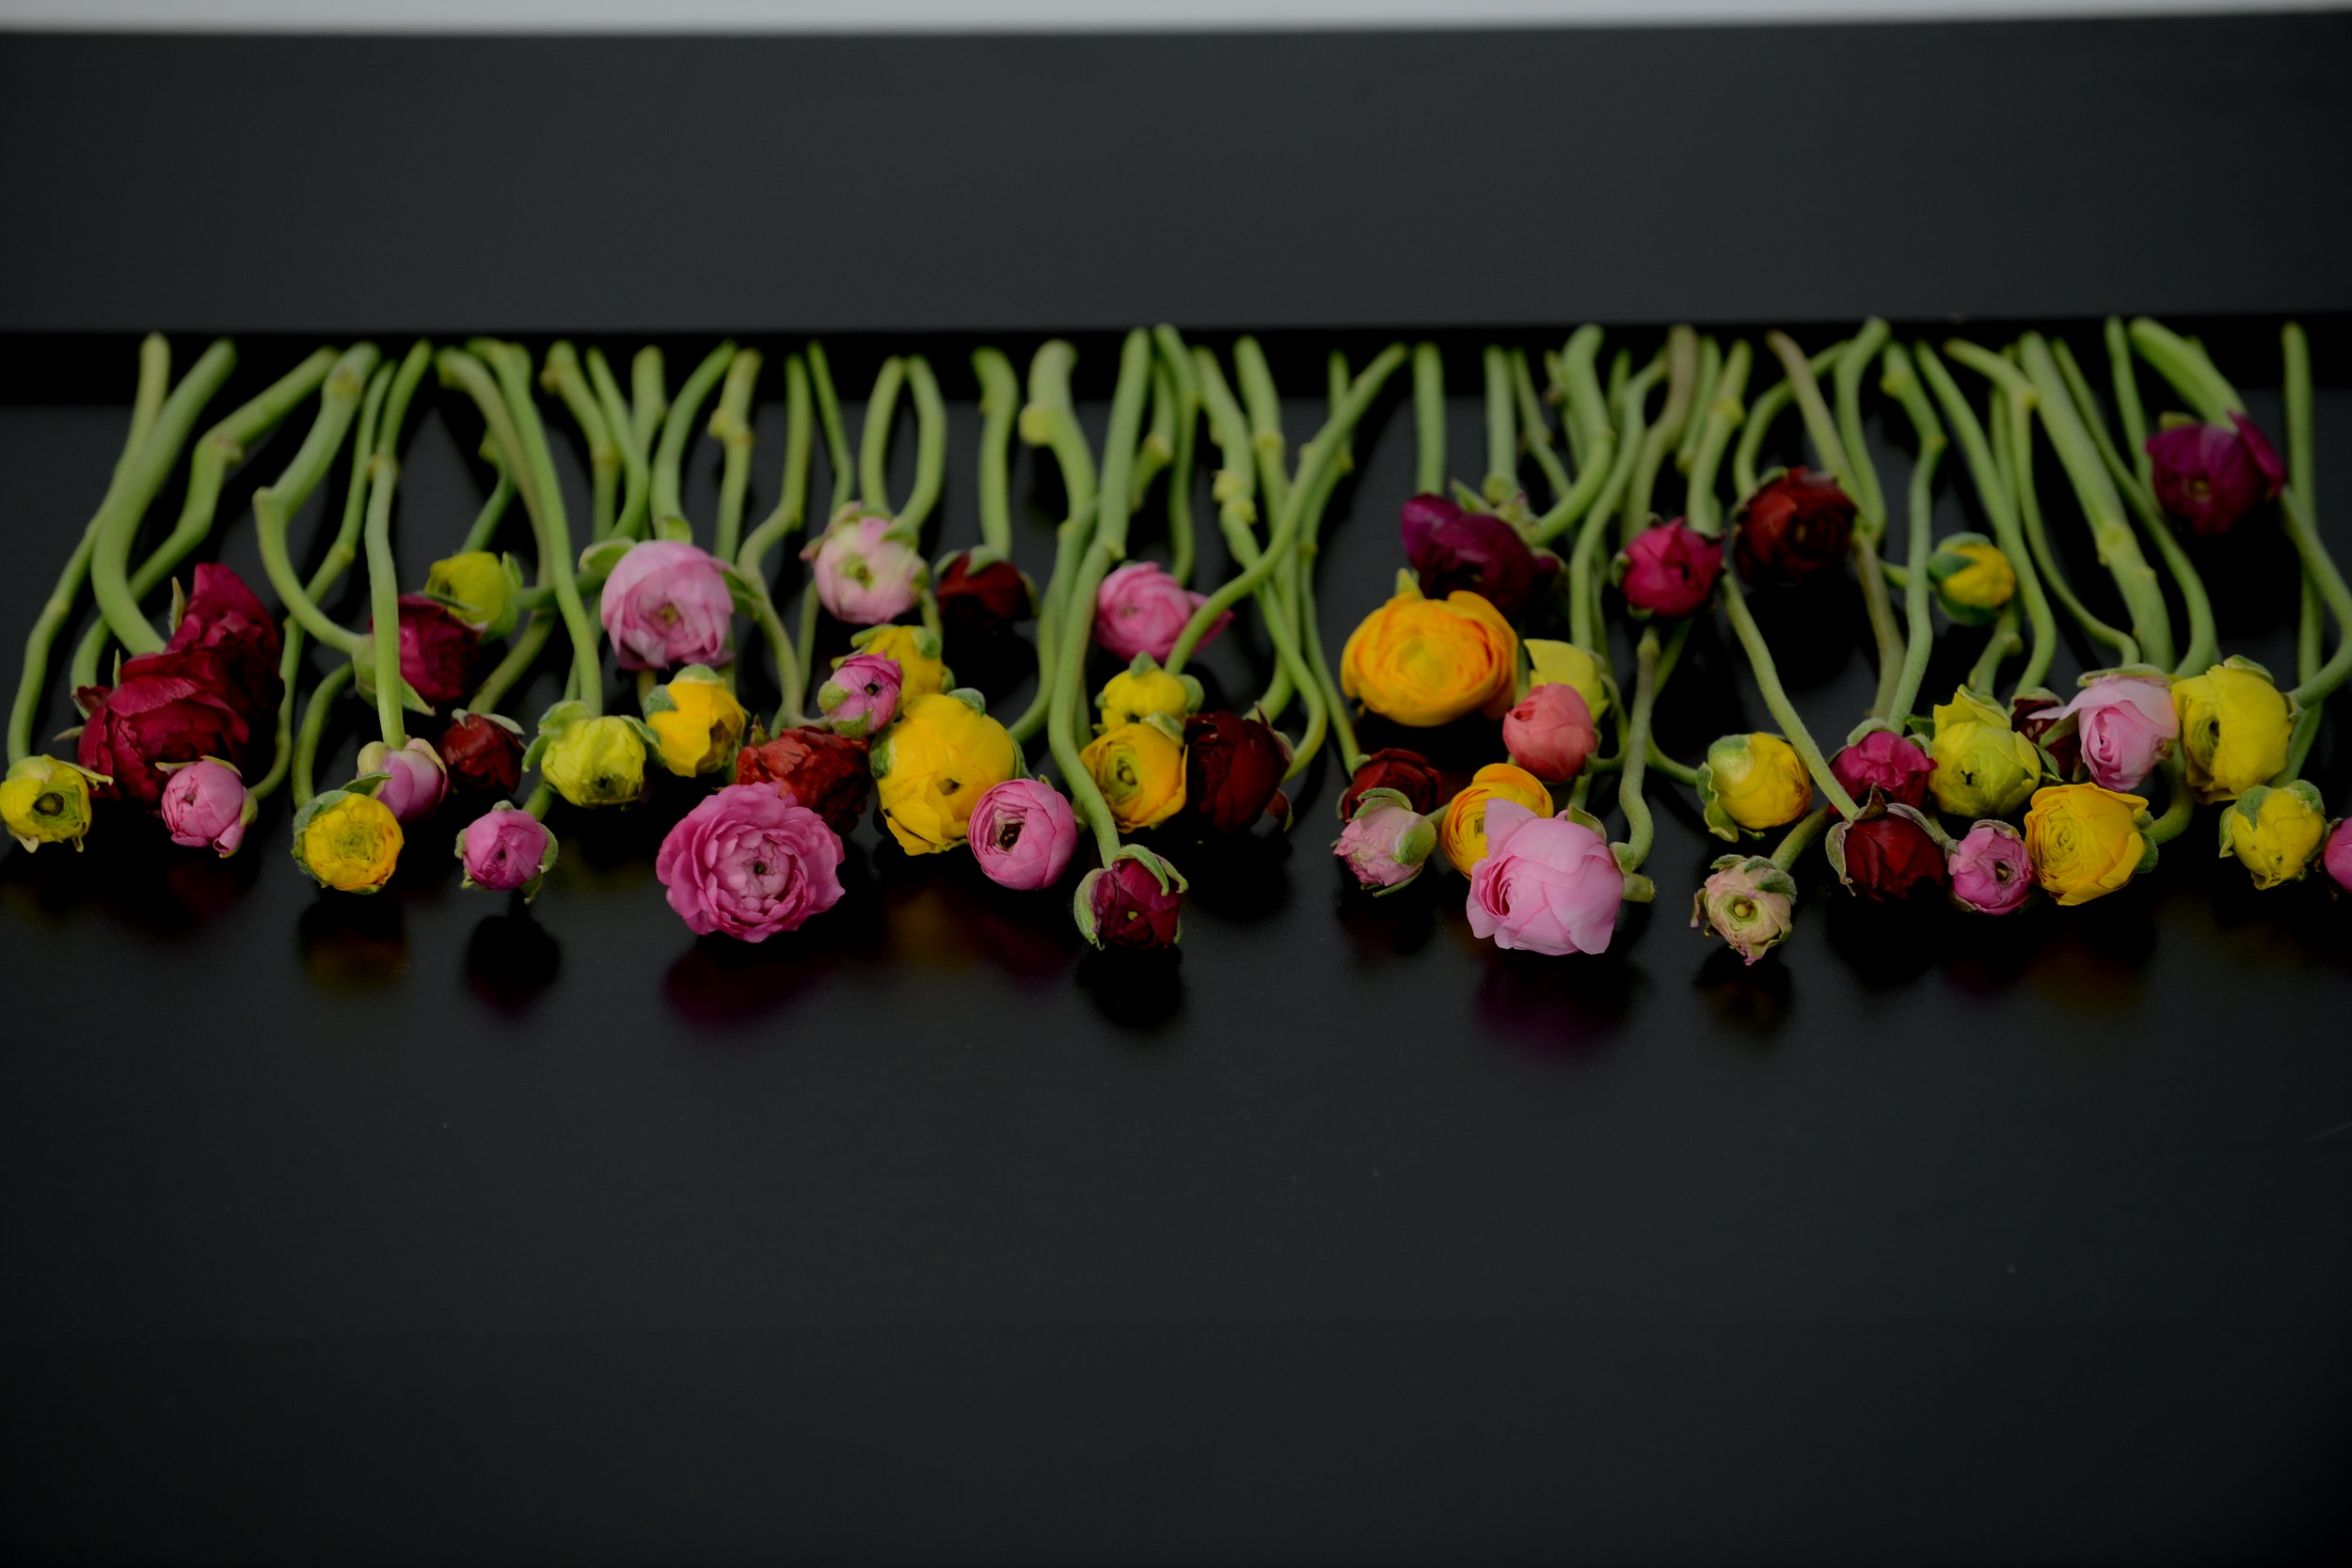 Season of spring - Ranunculus Flower Fields, Peonies, Tulips, Easter and More!